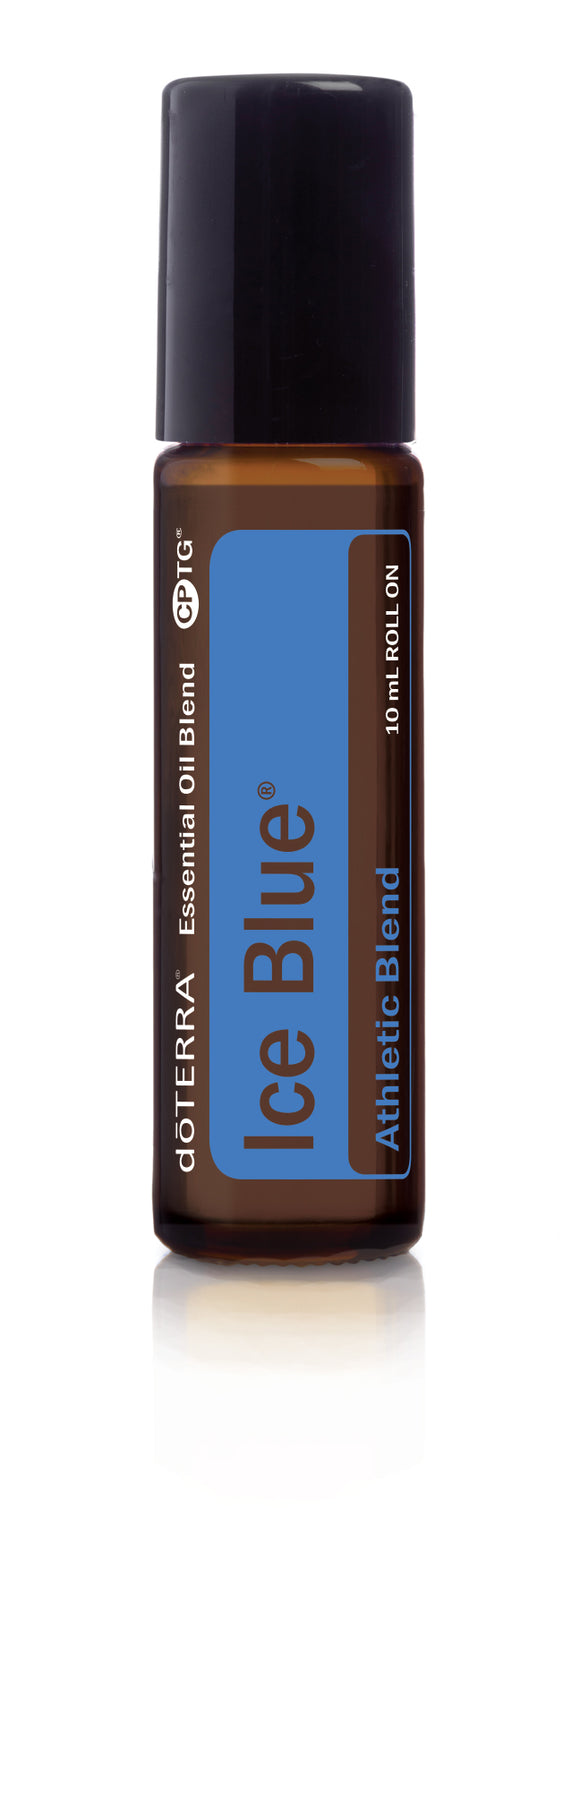 dōTERRA Ice Blue Touch Roll On 10ml - CUSTOM AND ESSENTIALS